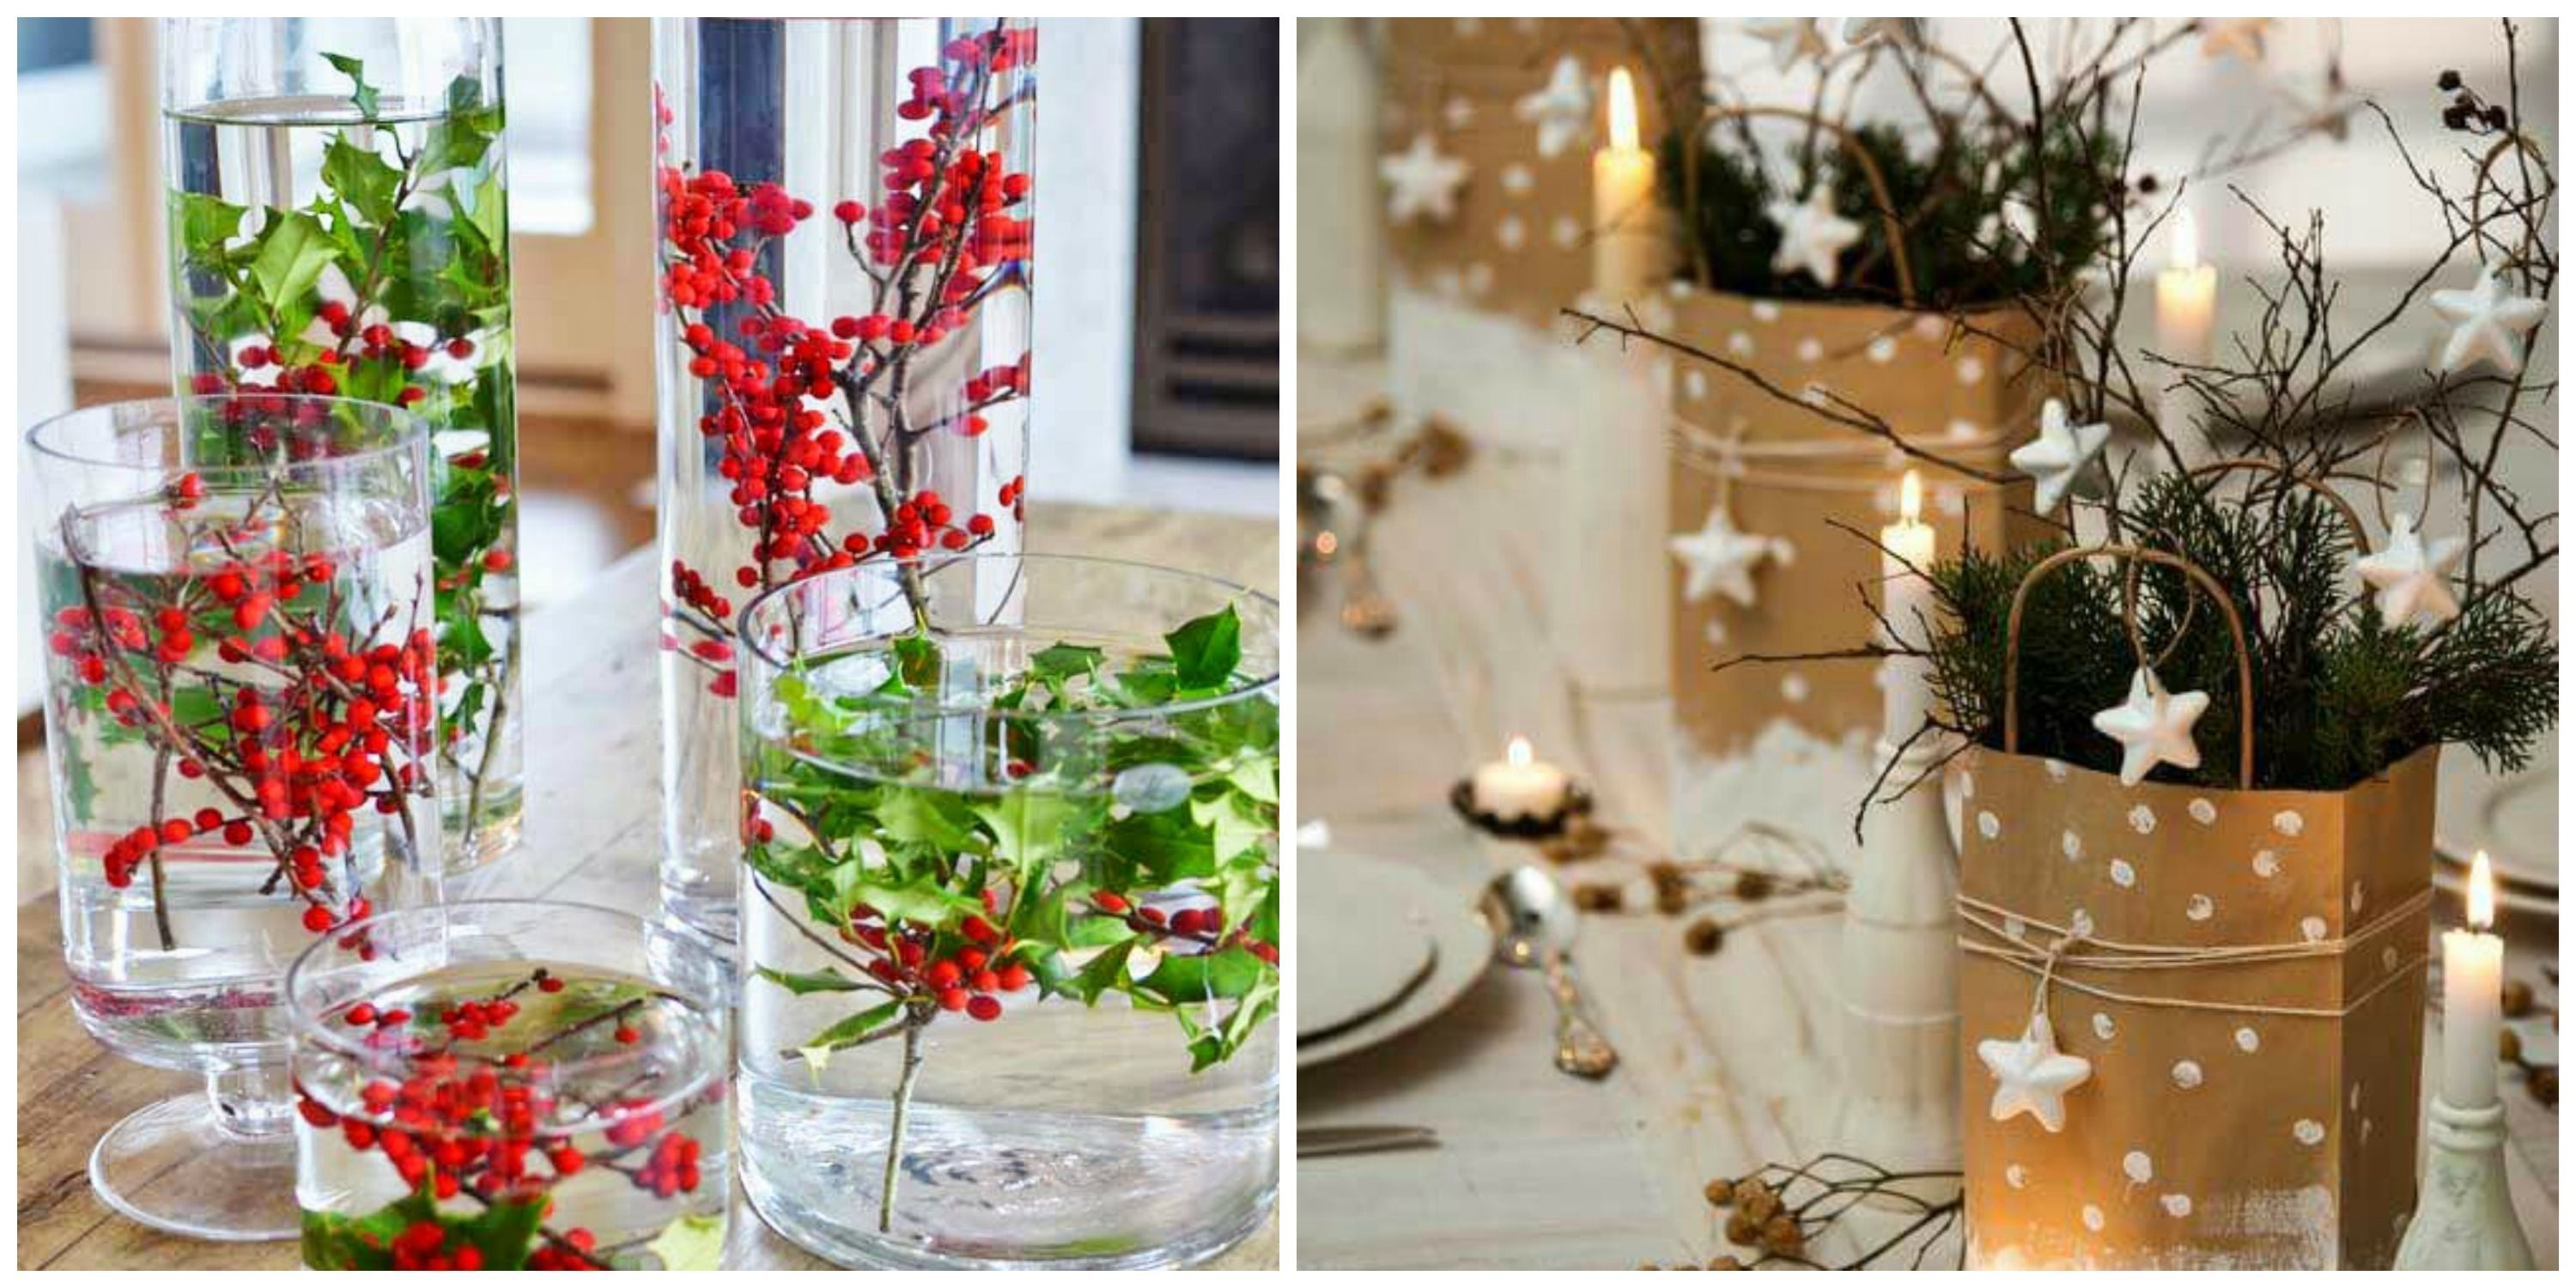 Table Decorating Ideas - Elegant Table Decor and Settings